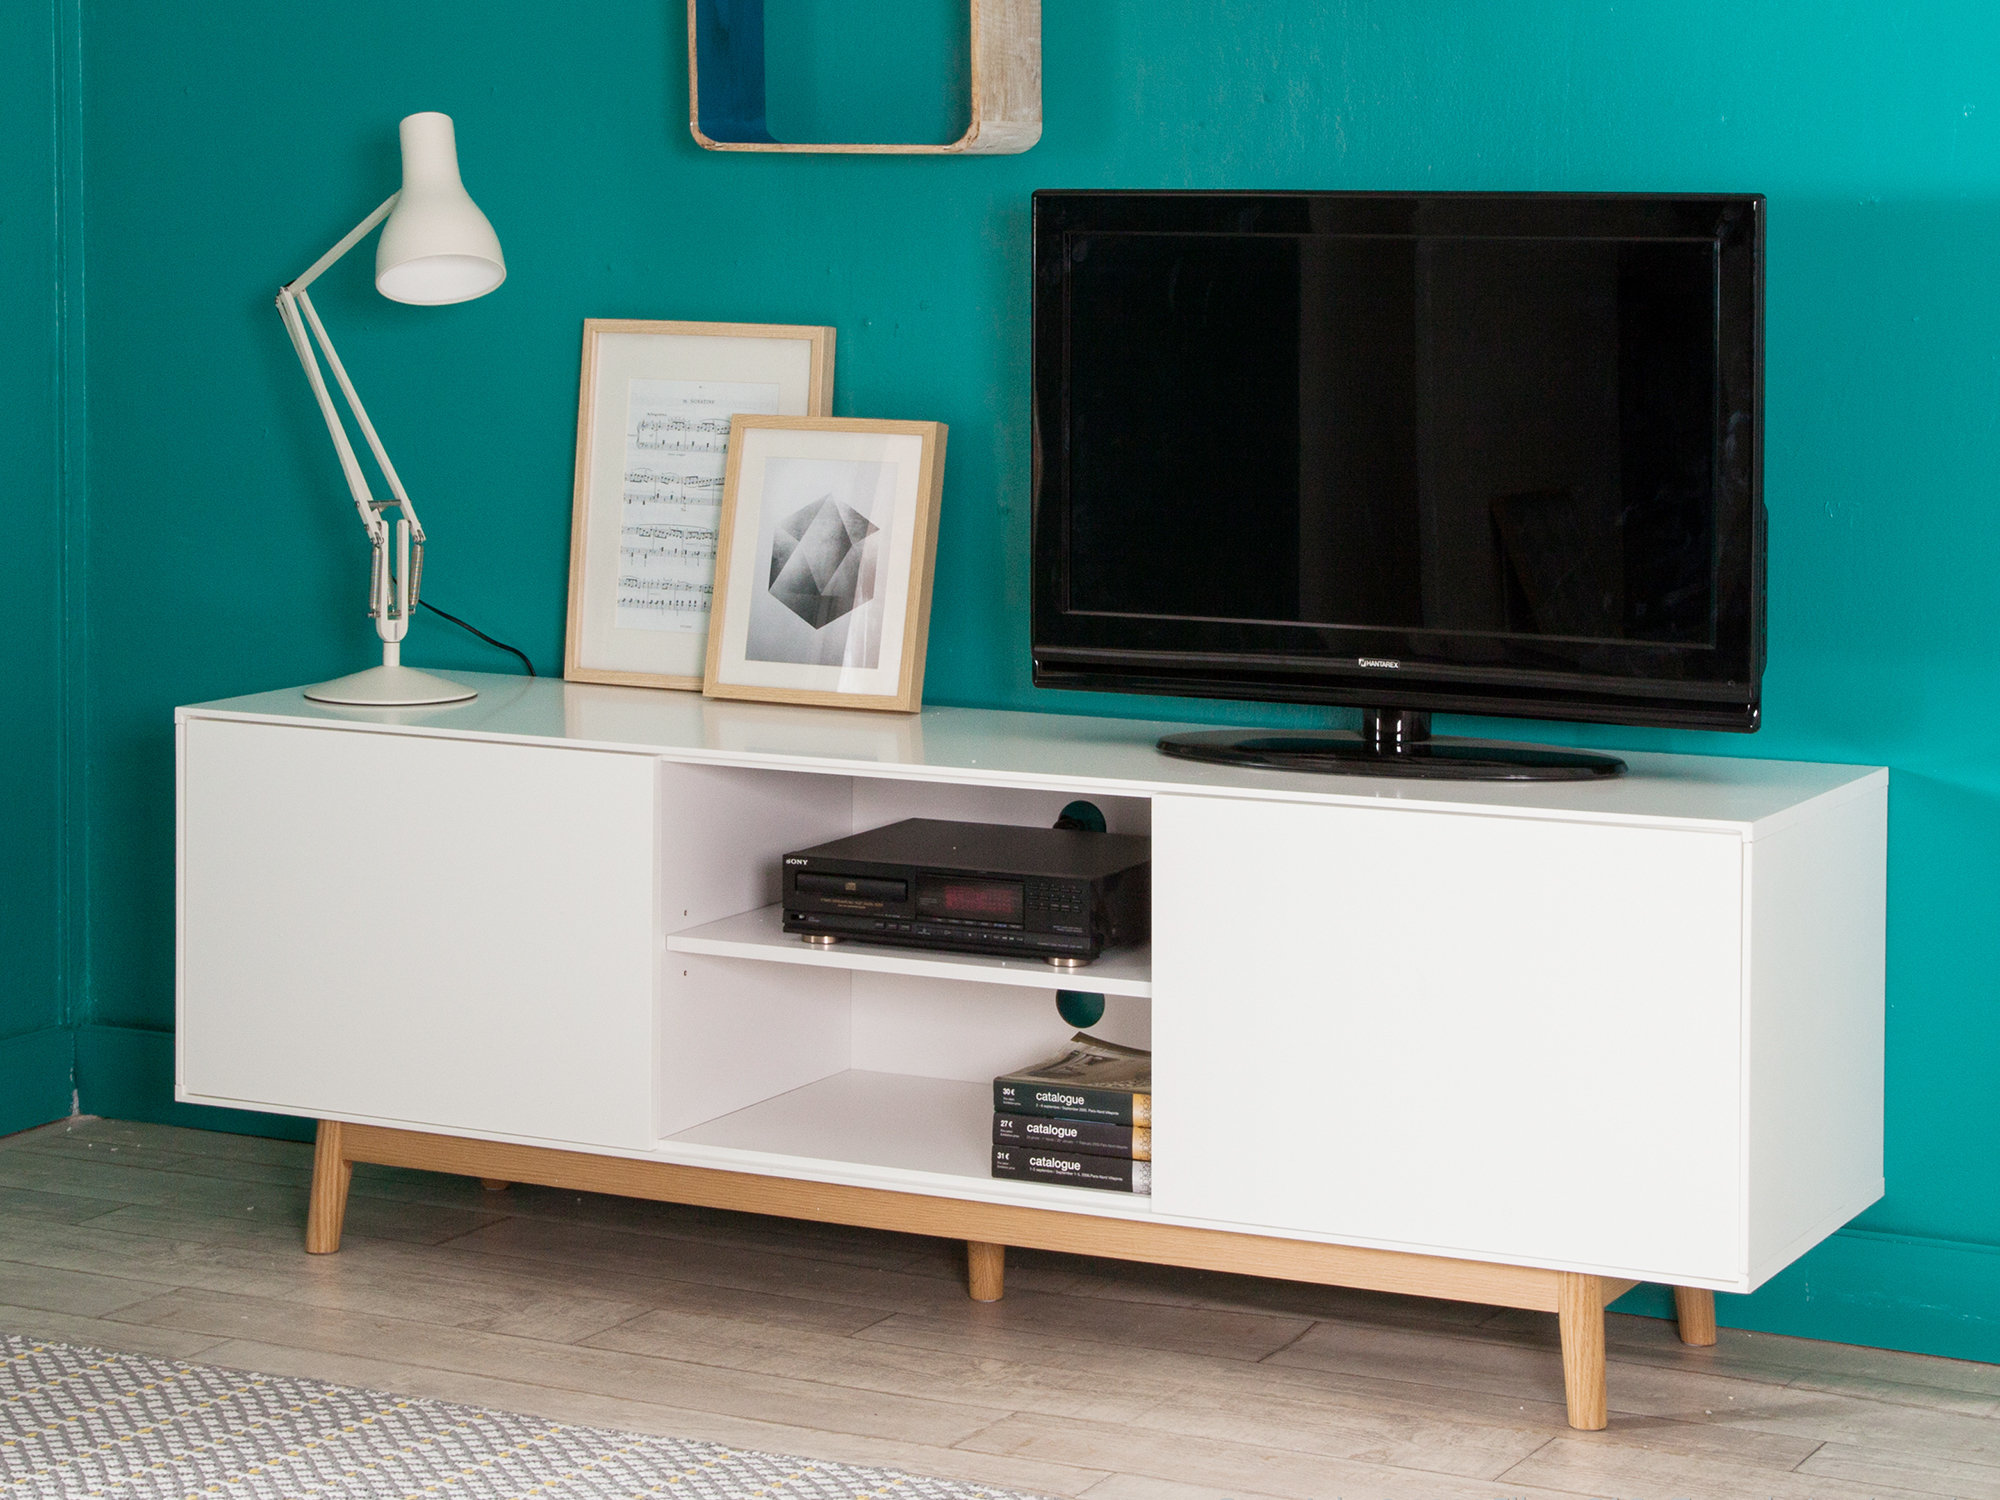 meuble tv blanc pied bois id es de d coration int rieure french decor. Black Bedroom Furniture Sets. Home Design Ideas